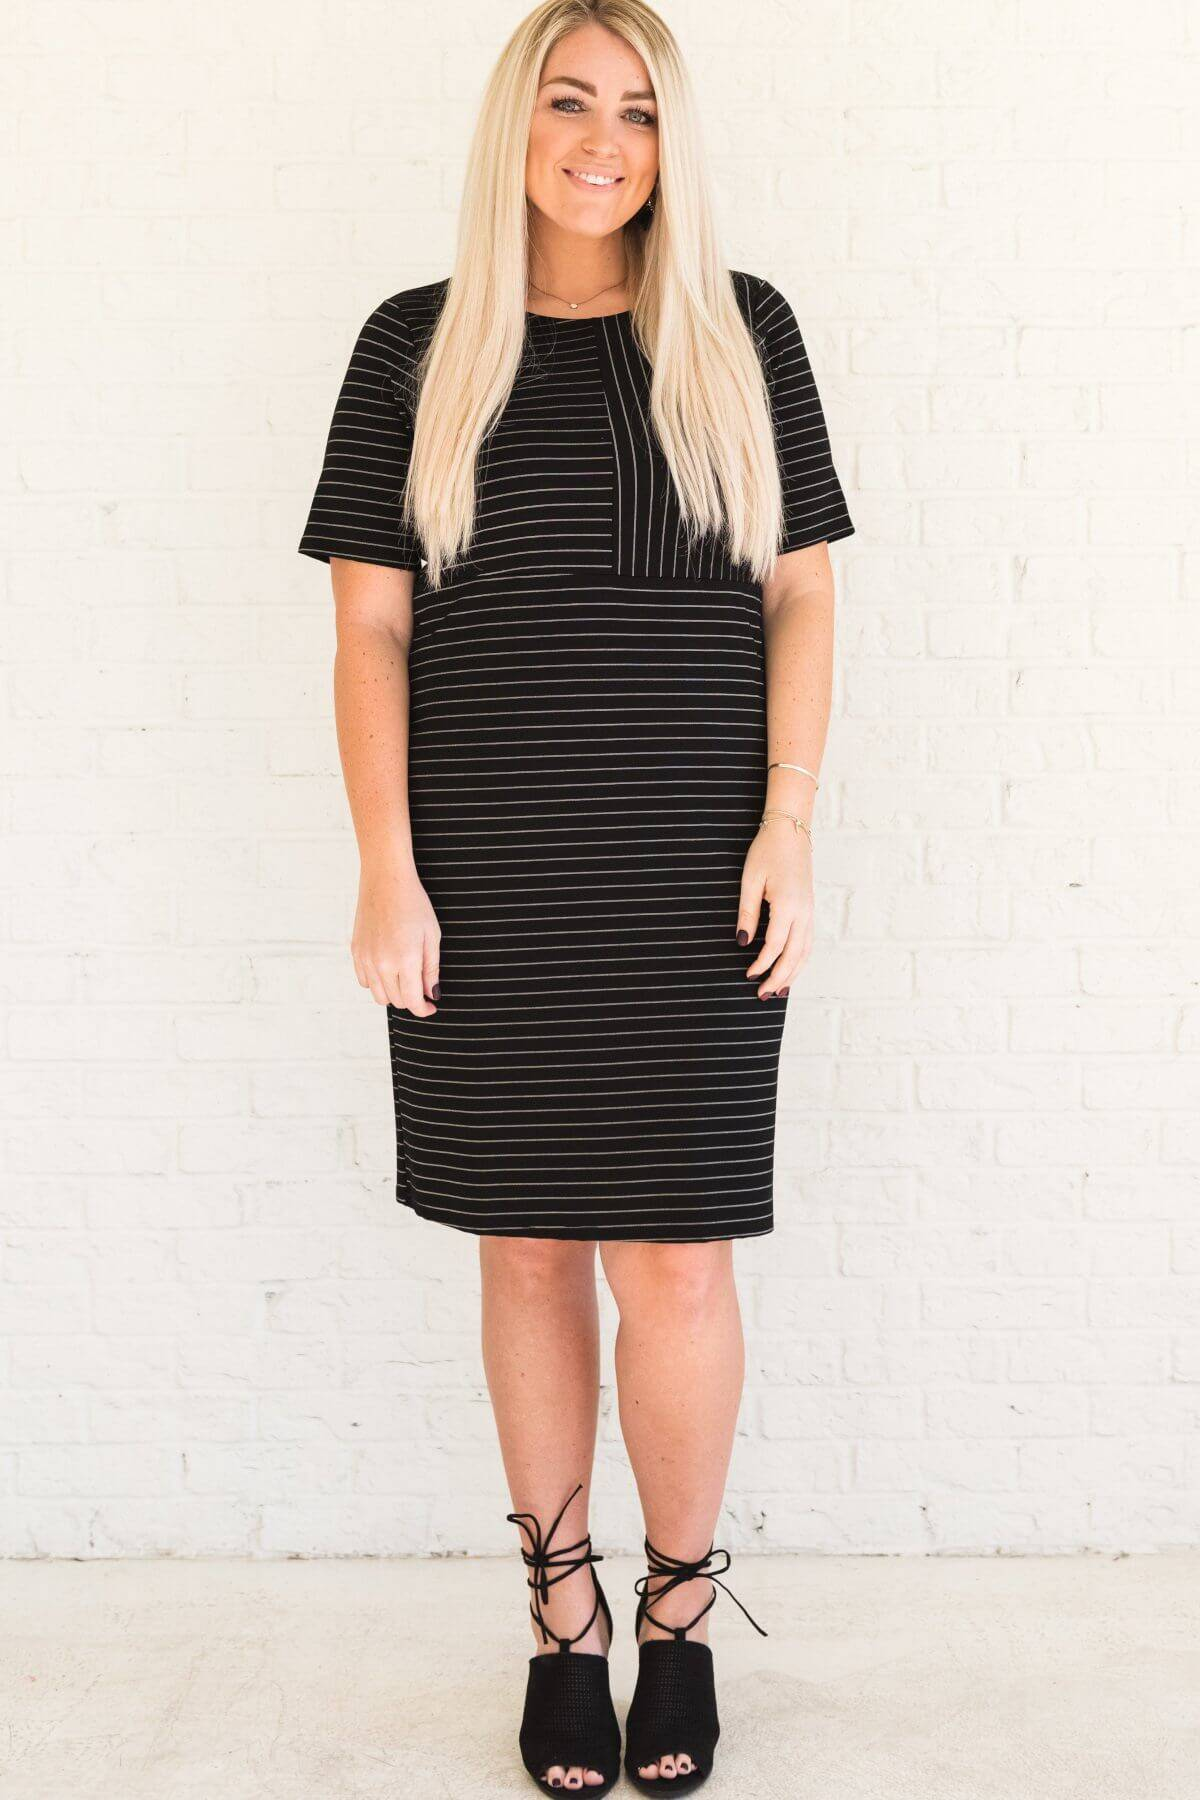 Black Striped Curvy Plus Sized Knee Length Dresses Business Casual for Women